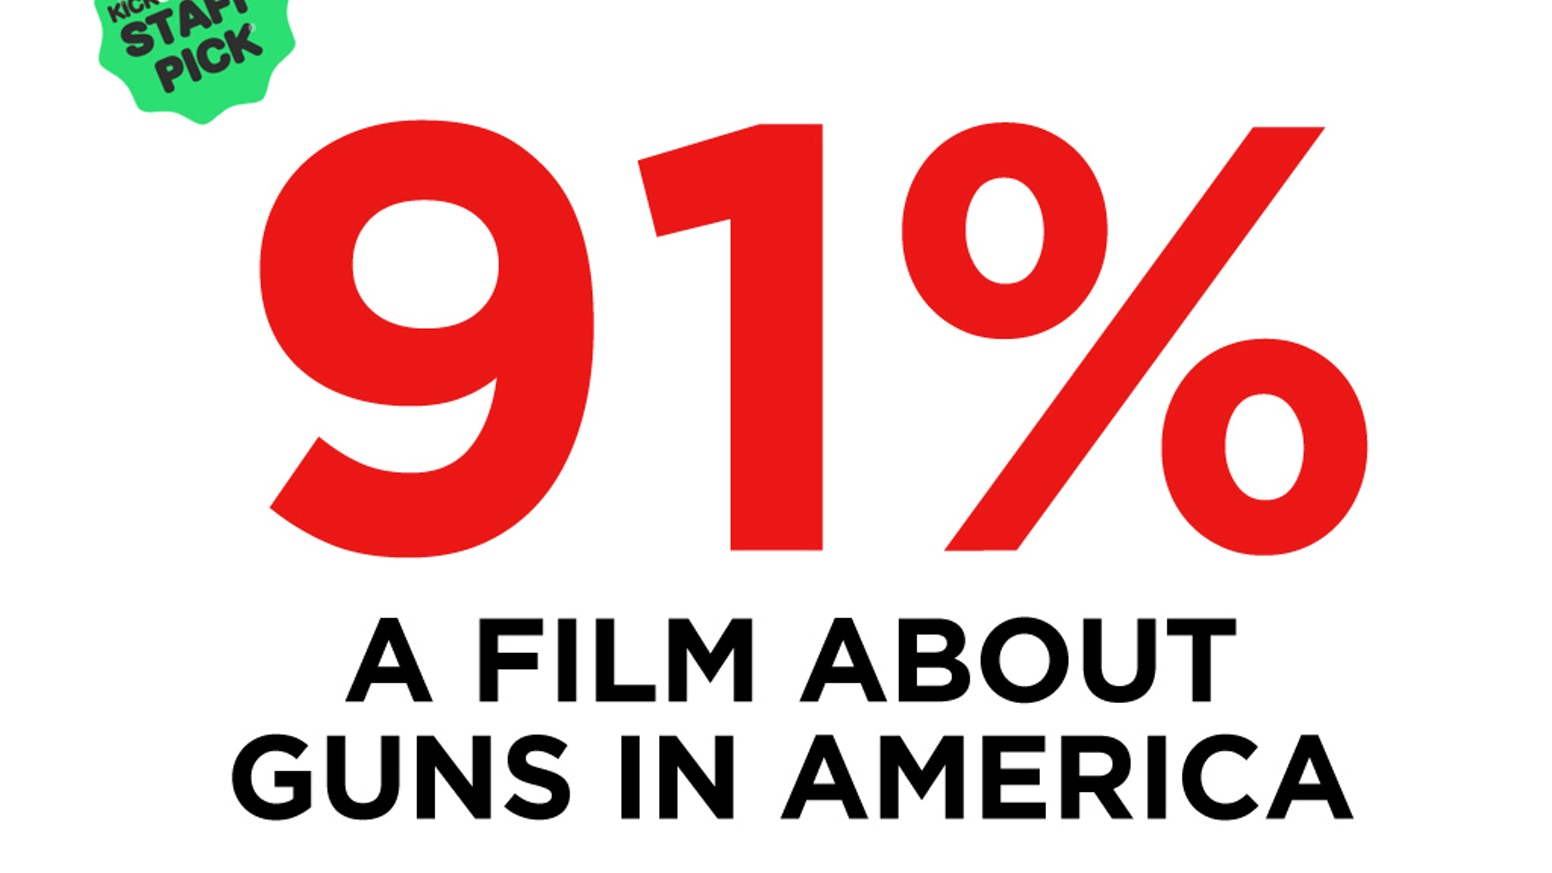 91% of Americans are for comprehensive Background Checks. Congress can't pass solid laws. Every year, we have over 130,000 victims.Learn more about 91% at 91percentfilm.com